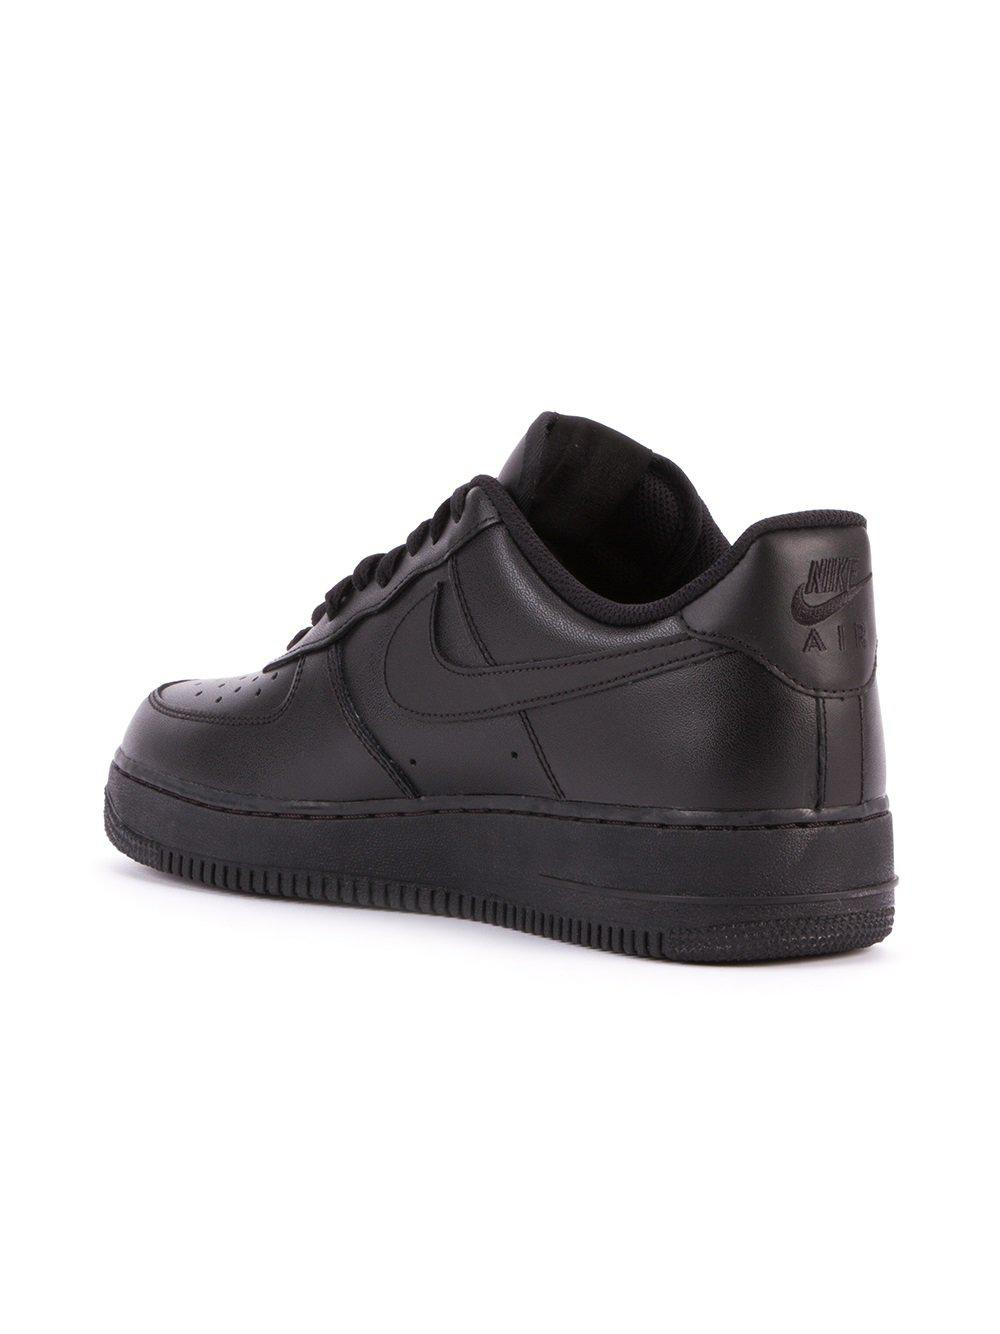 Nike Leather 'air Force 1 '07' Sneakers in Black